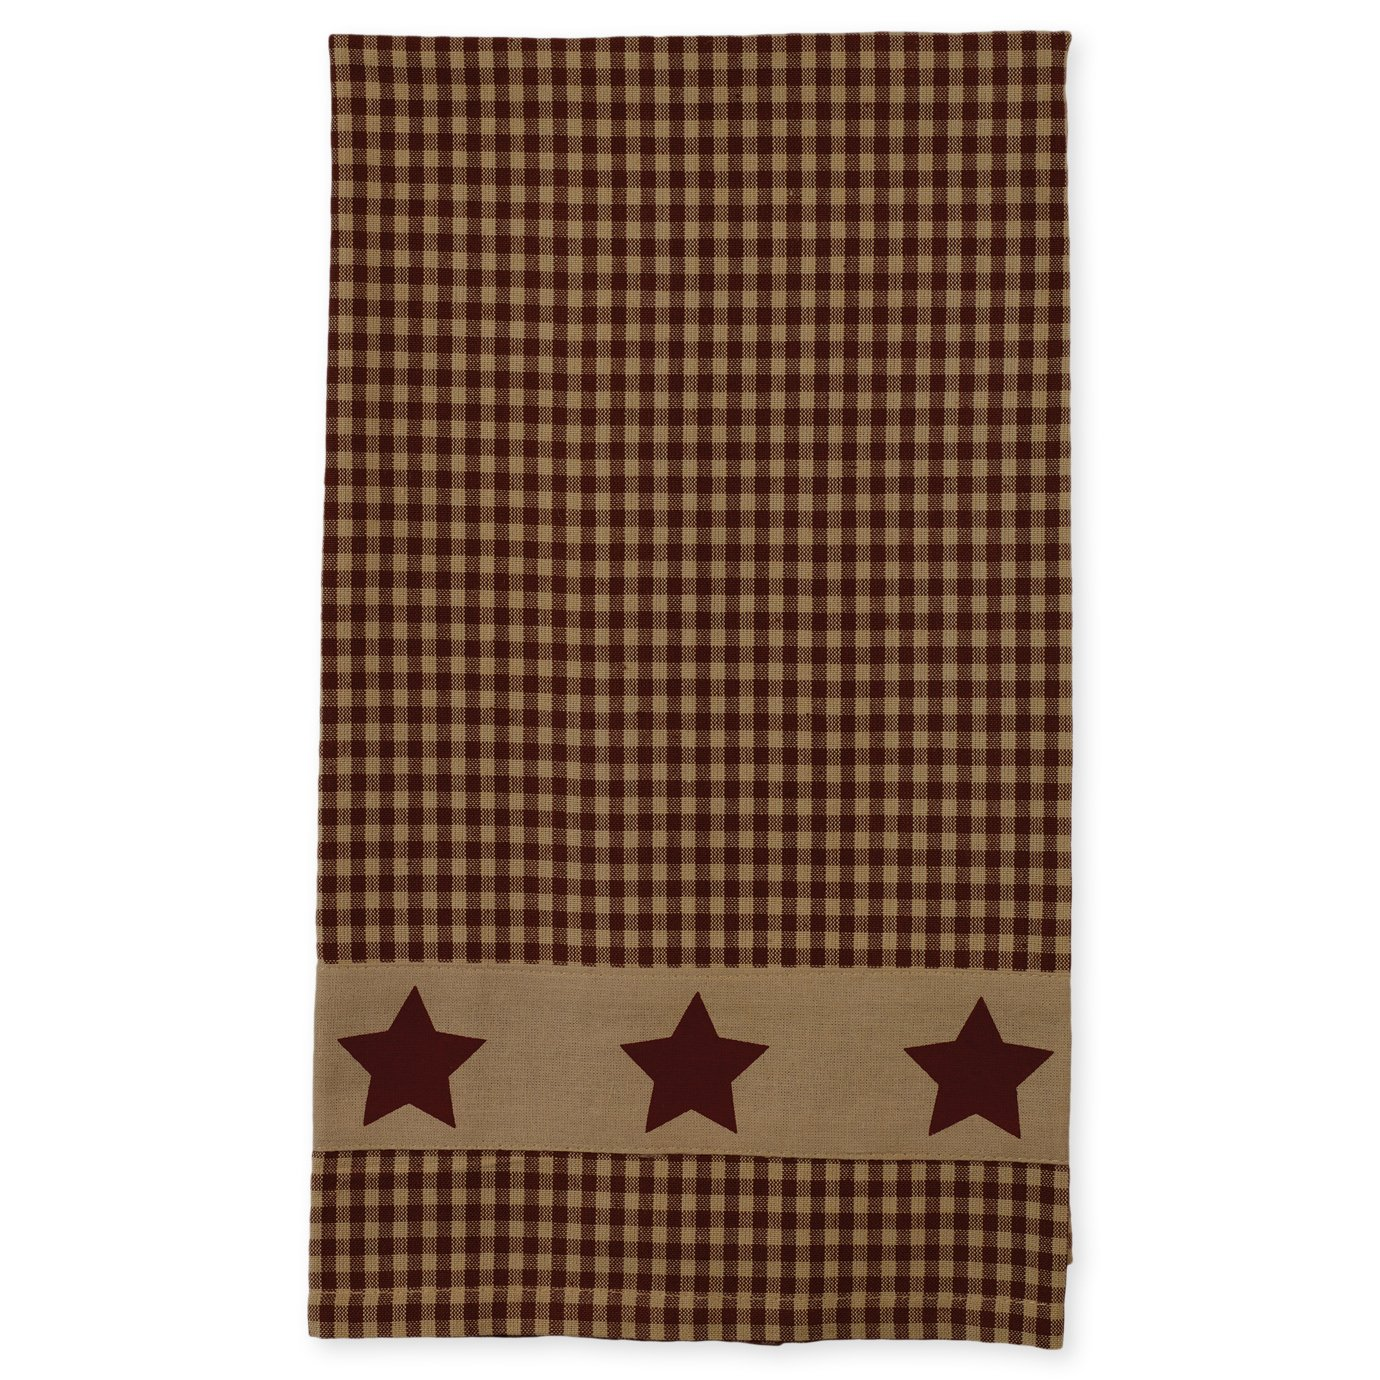 Colonial Burgundy Country Star 19 x 28 Inch Applique All Cotton Hand Tea Towel